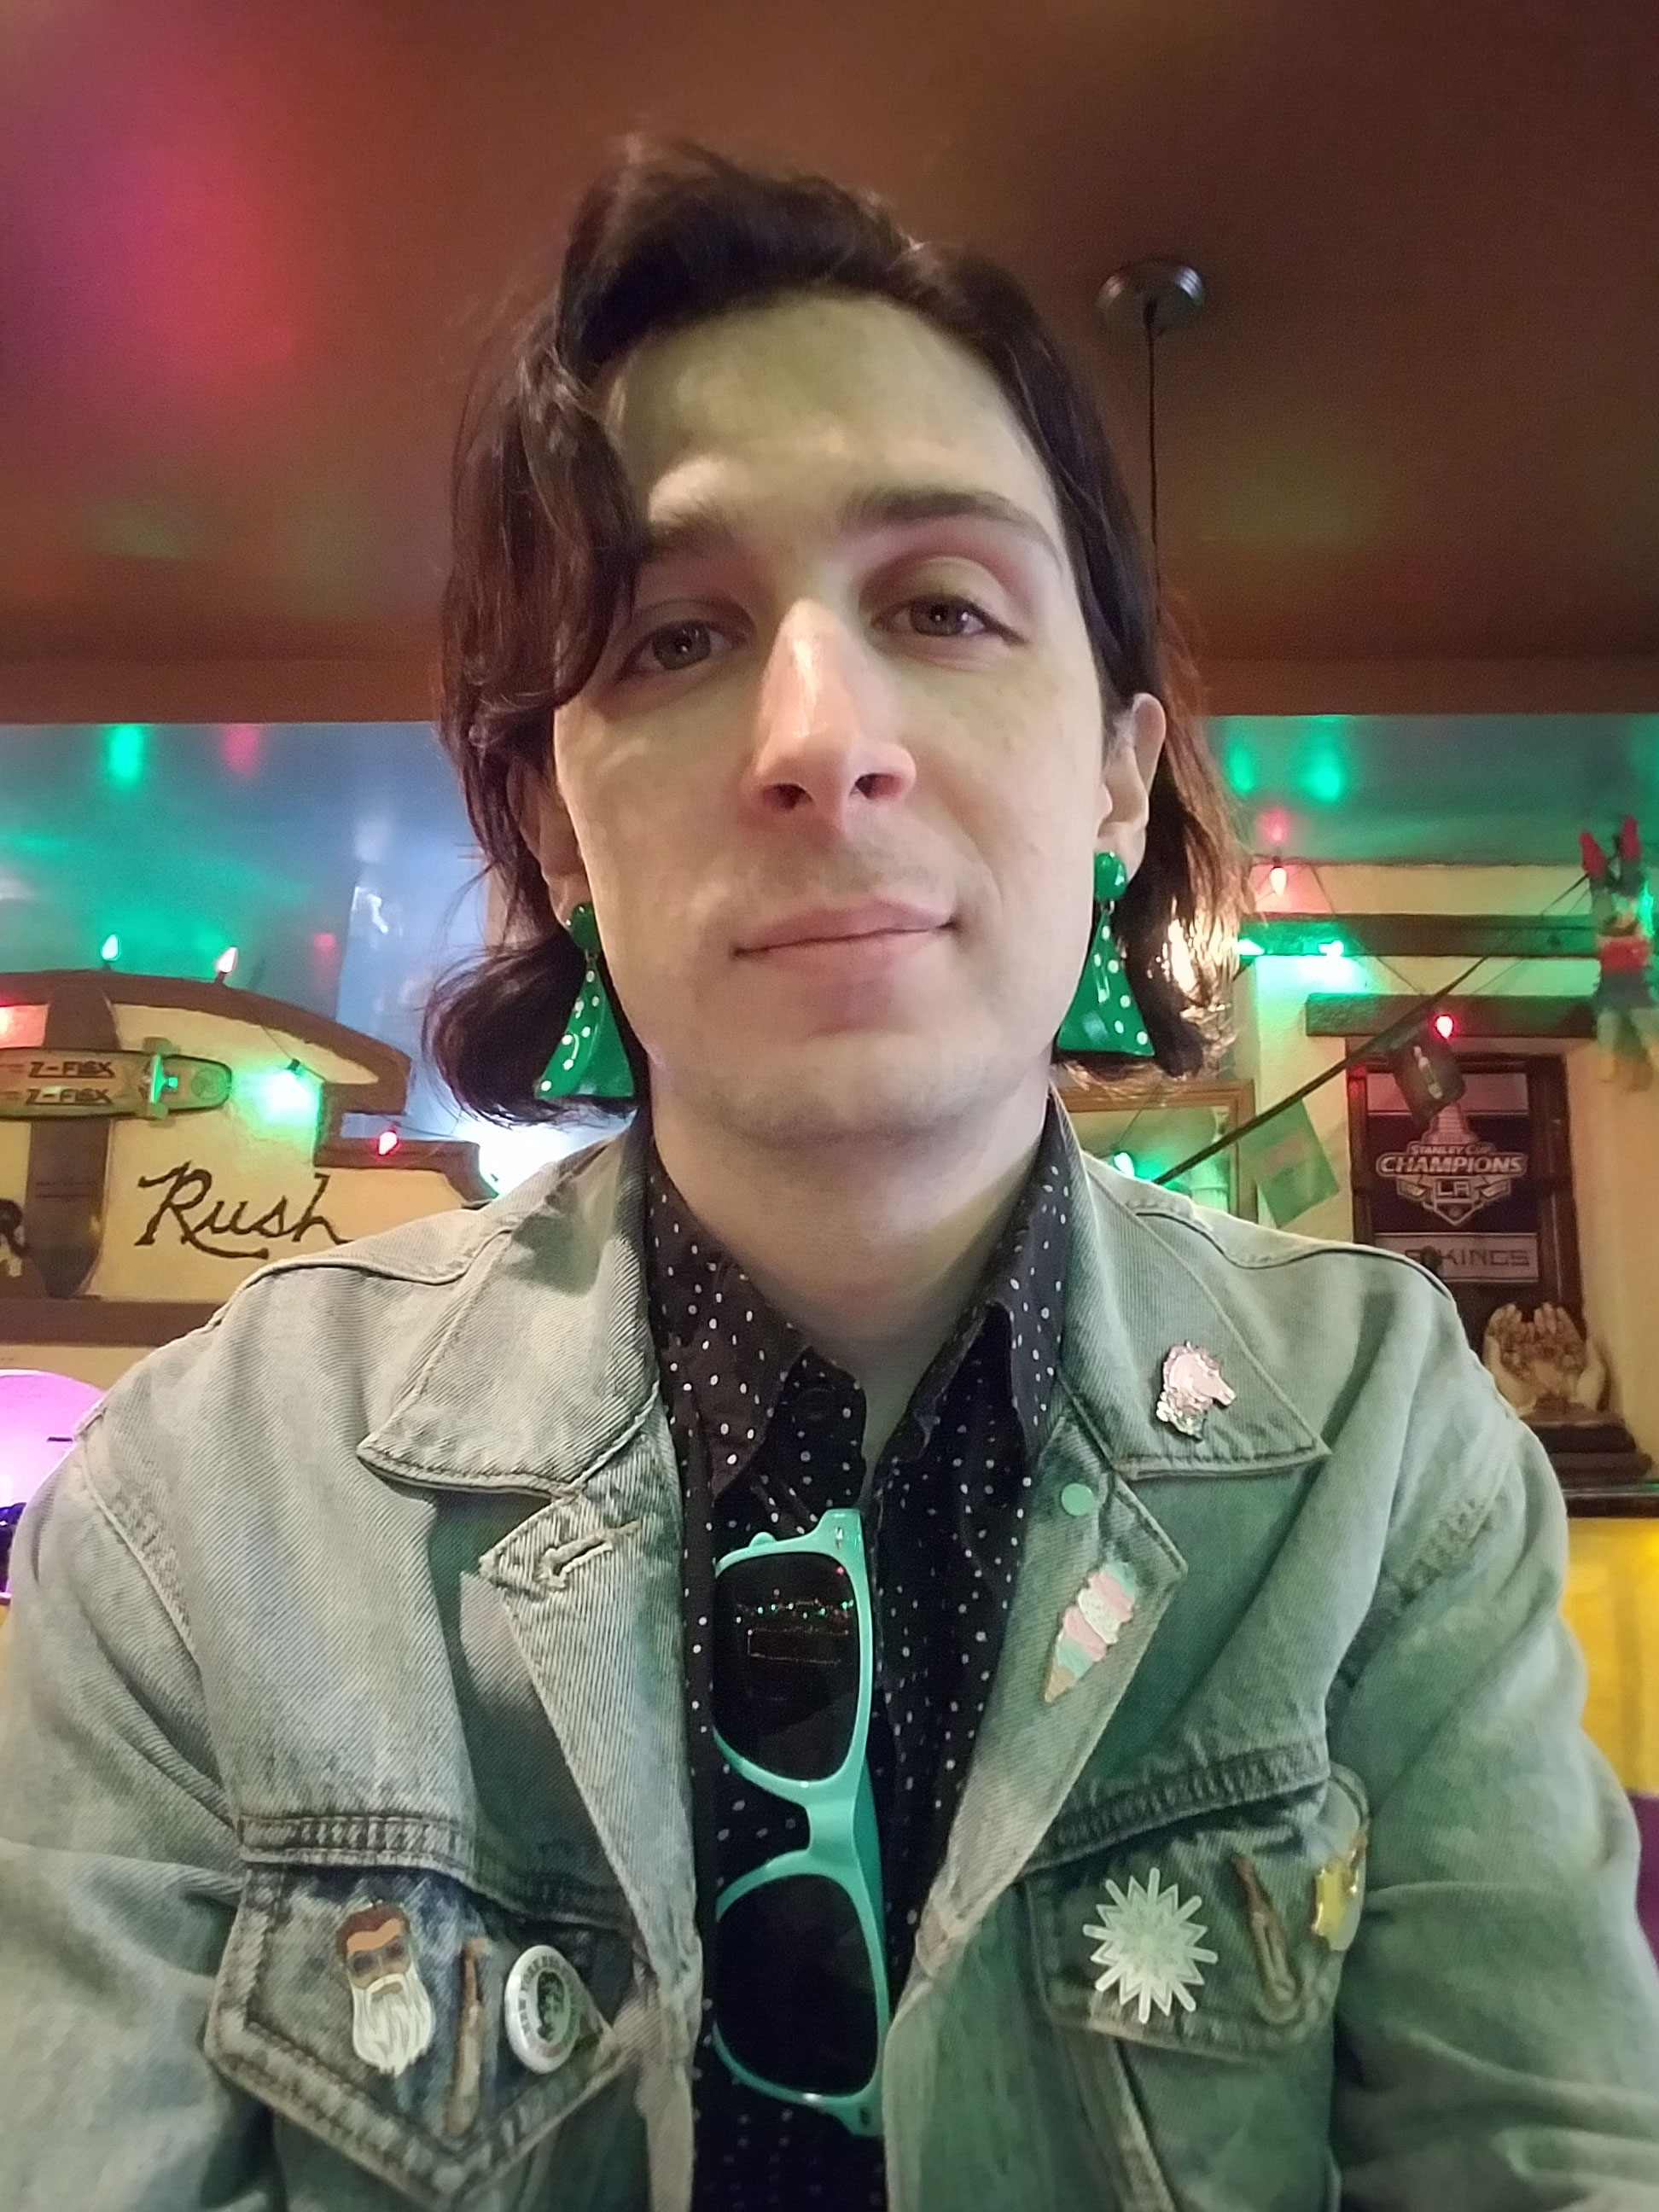 An indoor selfie of a person in a colorfuly lit restaurant. They are wearing a black and white dotted shirt and large green earrings.